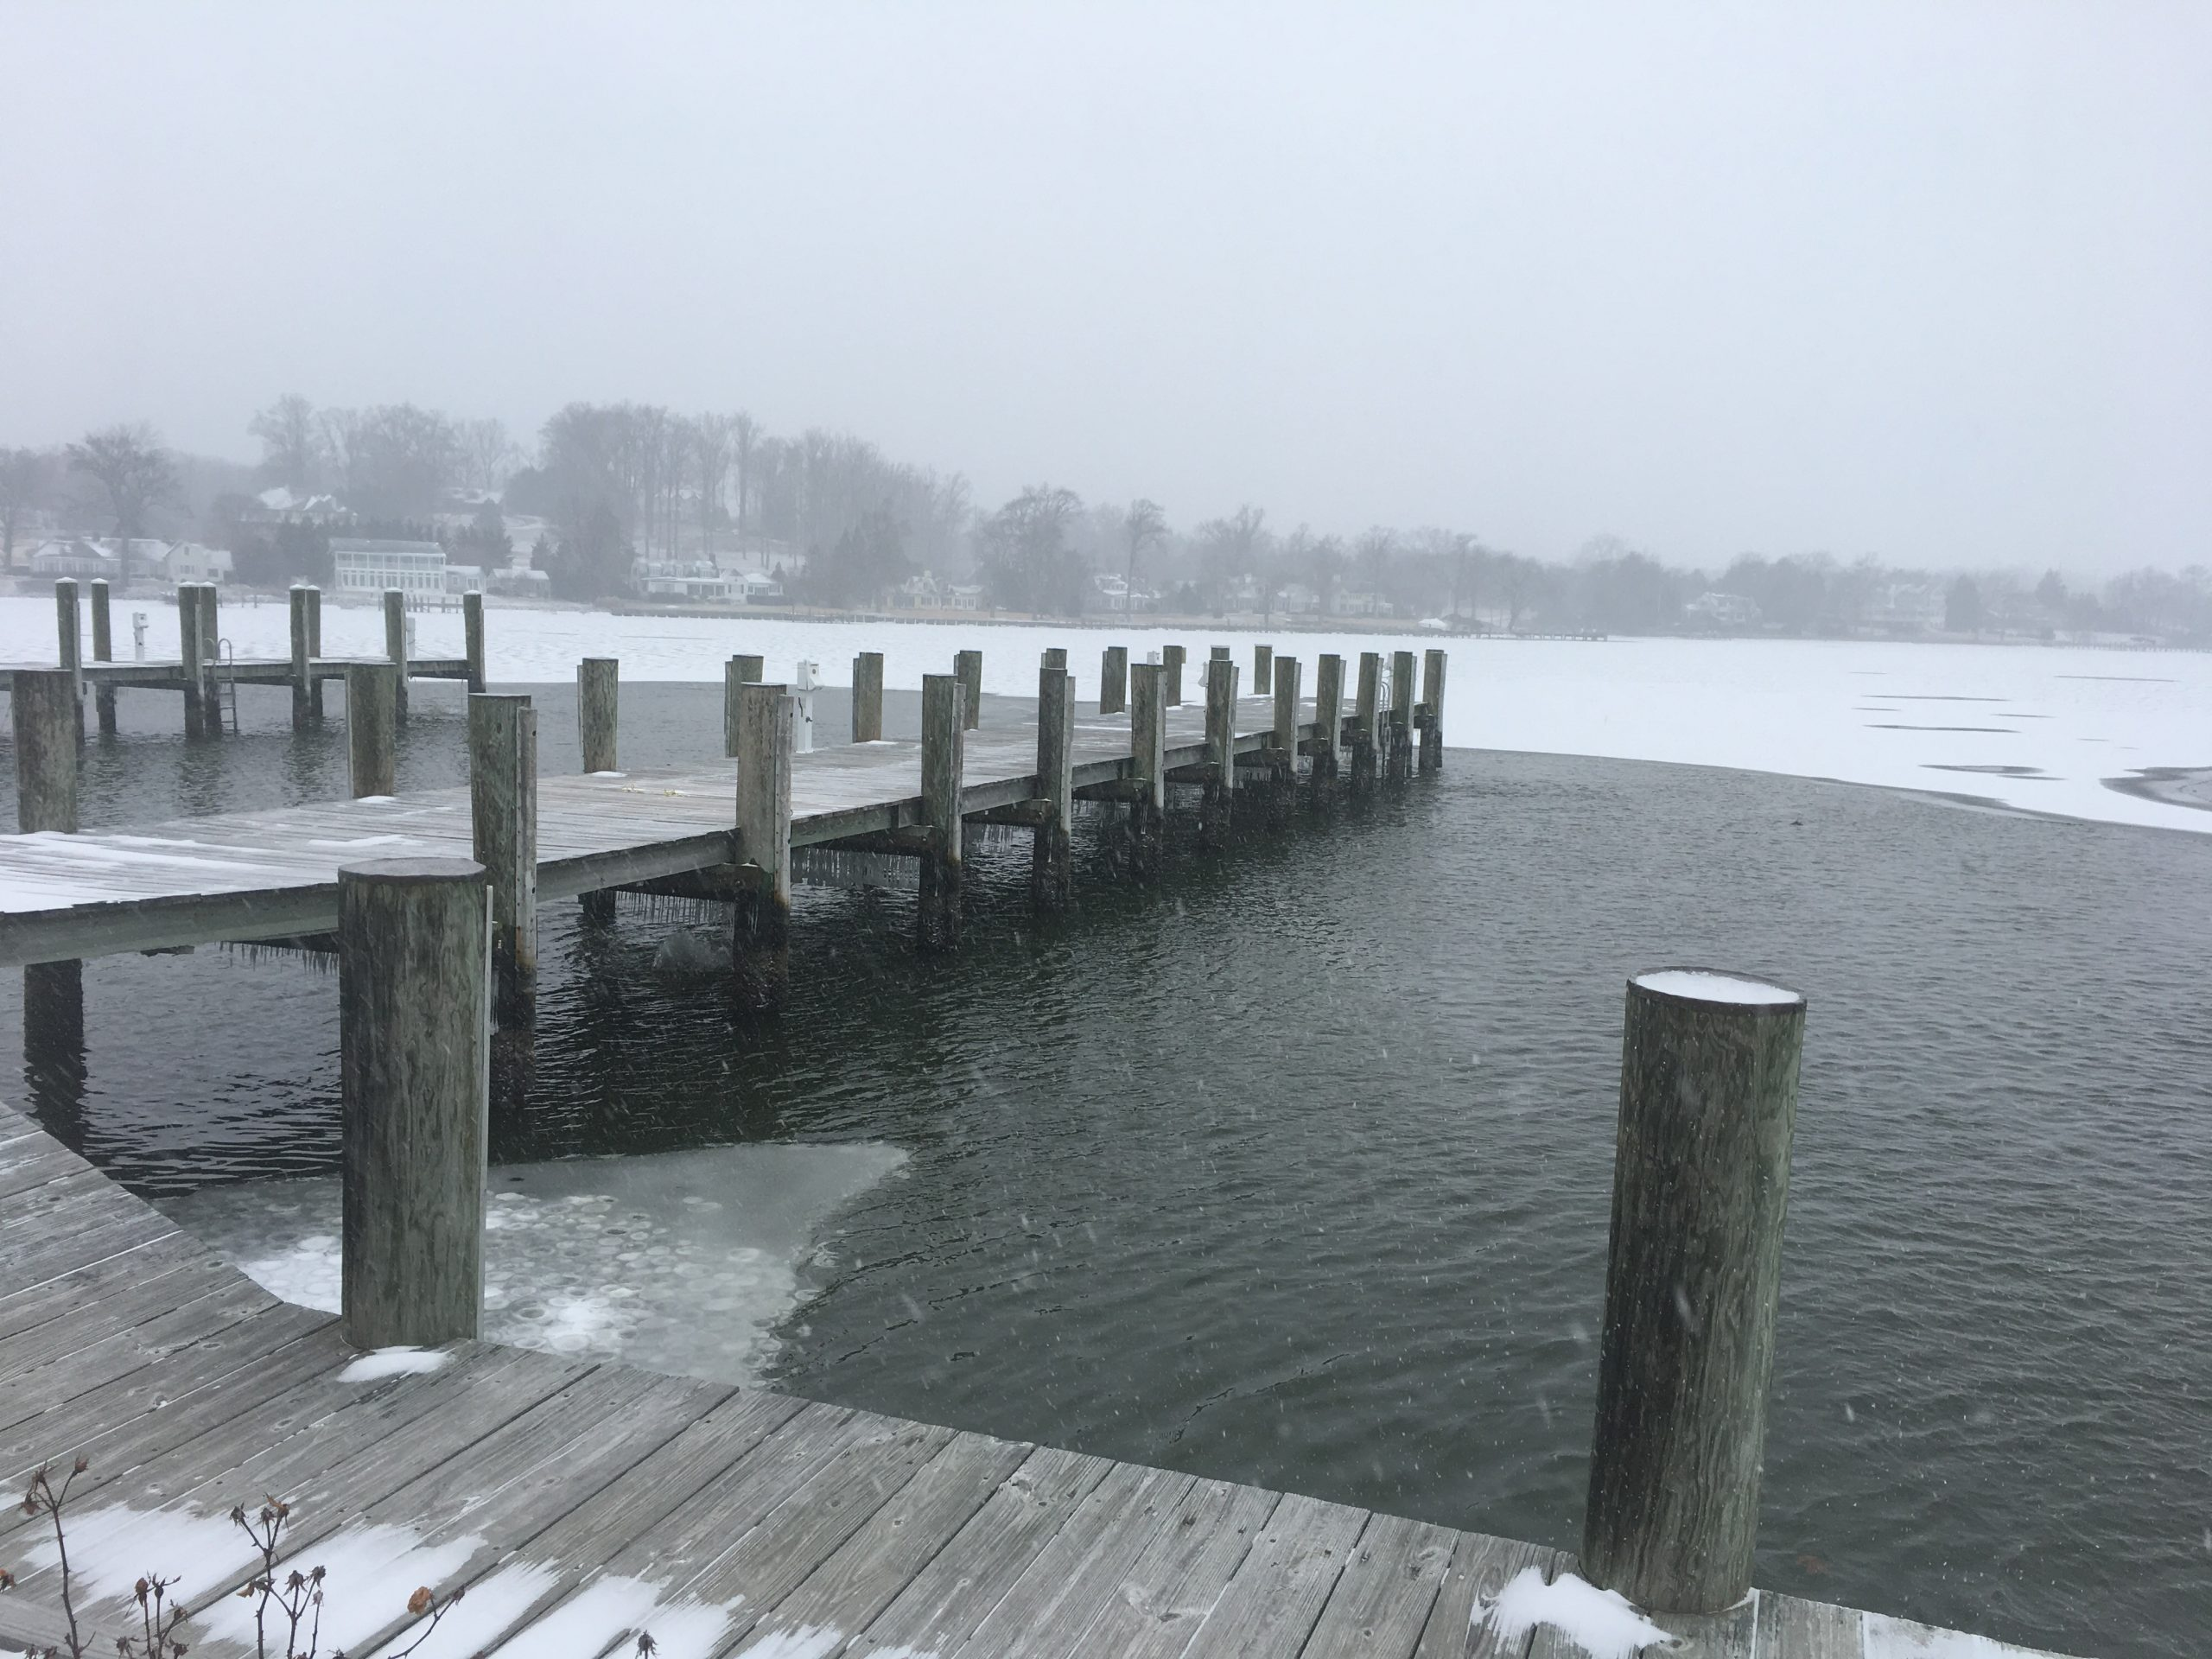 Wooden pier being protected from the lakes ice with an ice breaker